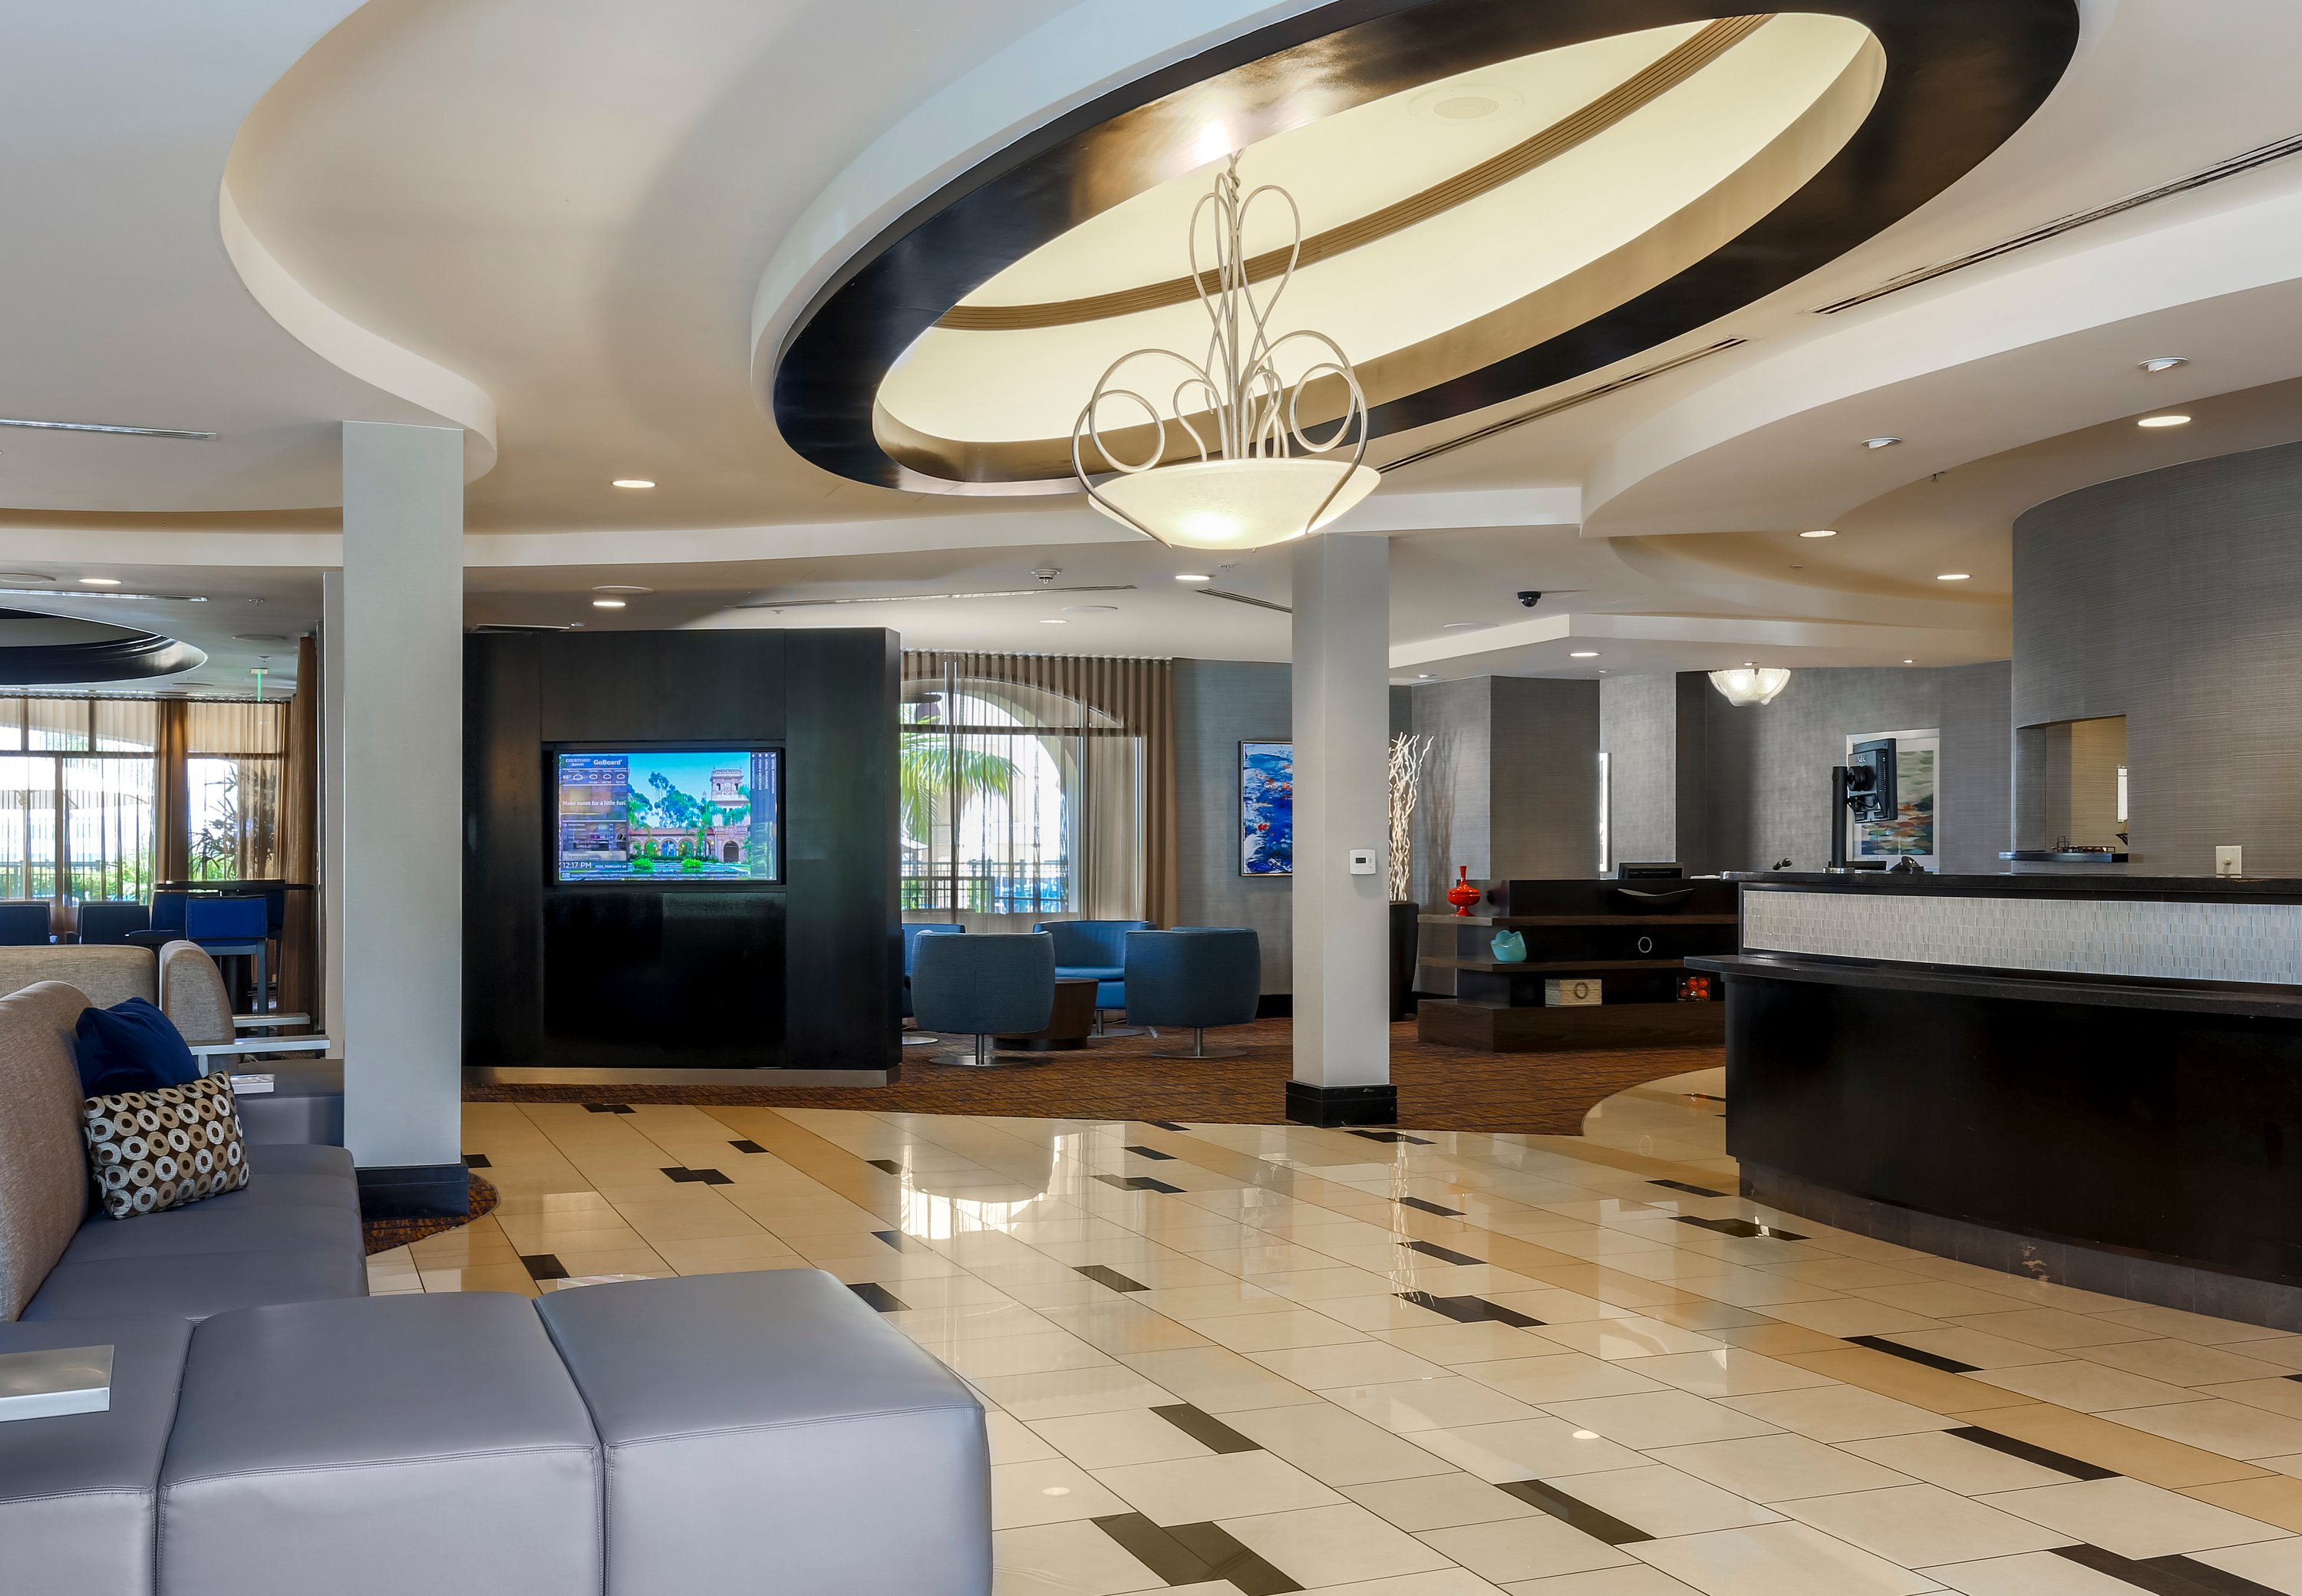 Courtyard by Marriott San Diego Airport/Liberty Station image 0